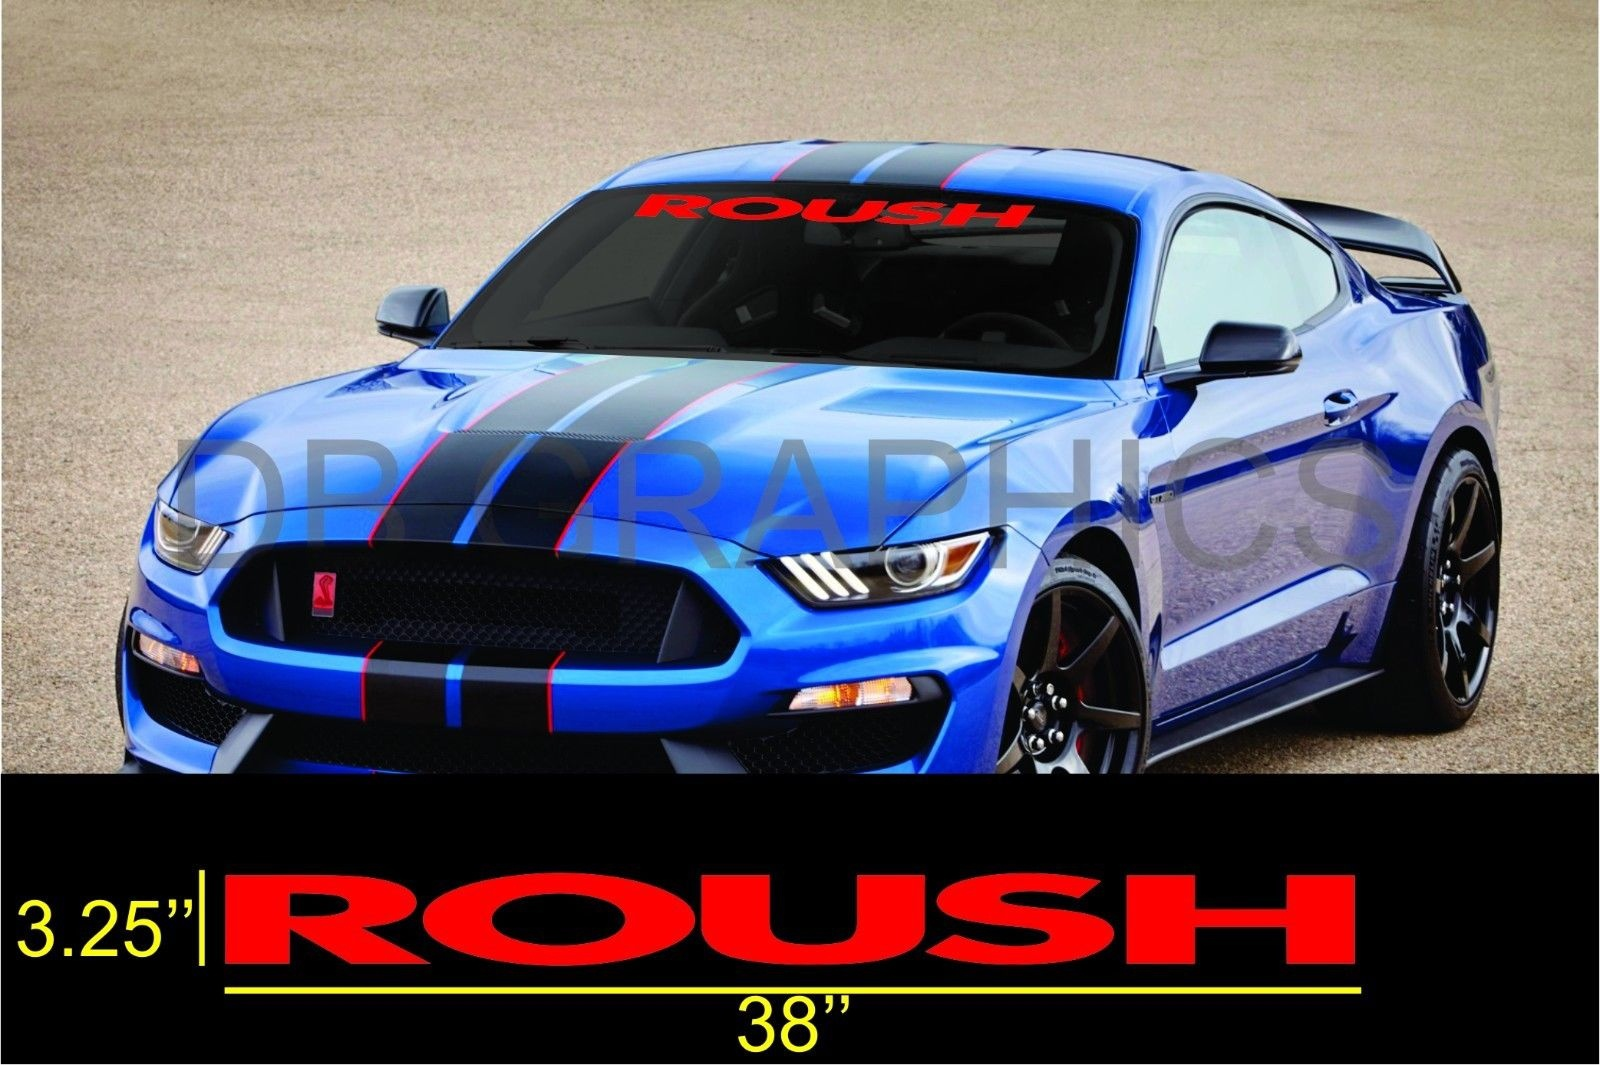 Emblem Sticker Graphic Color Orange 6 to 8 Year Outdoor Life 4 inch by 38 inch ROUSH Ford MUSTANG Windshield Banner Decal